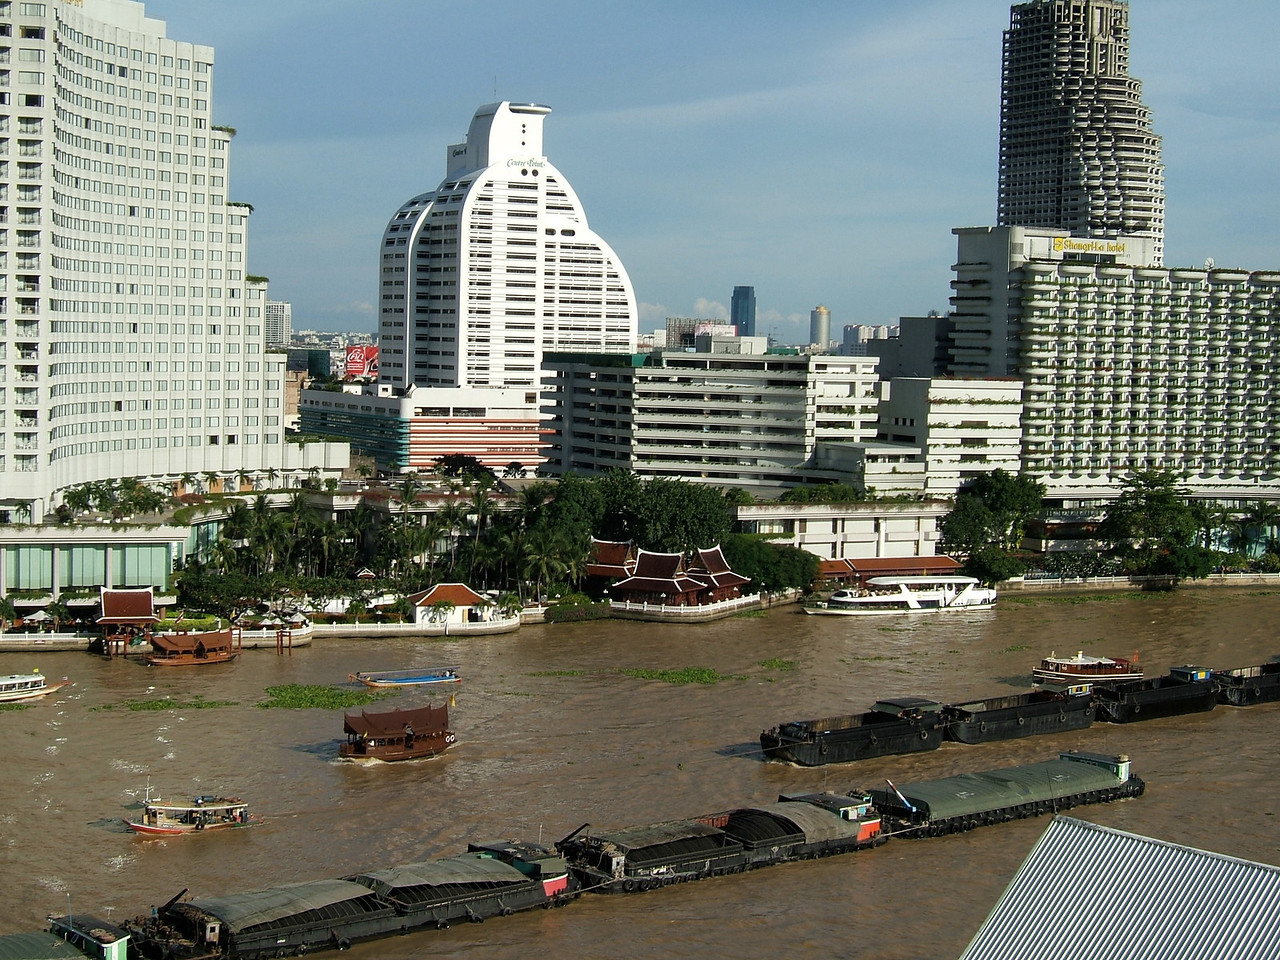 Directly across from the Peninsula is the Mandarin Oriental on the left and the Shangri-La on the right.  Barges are a constant sight on the river.